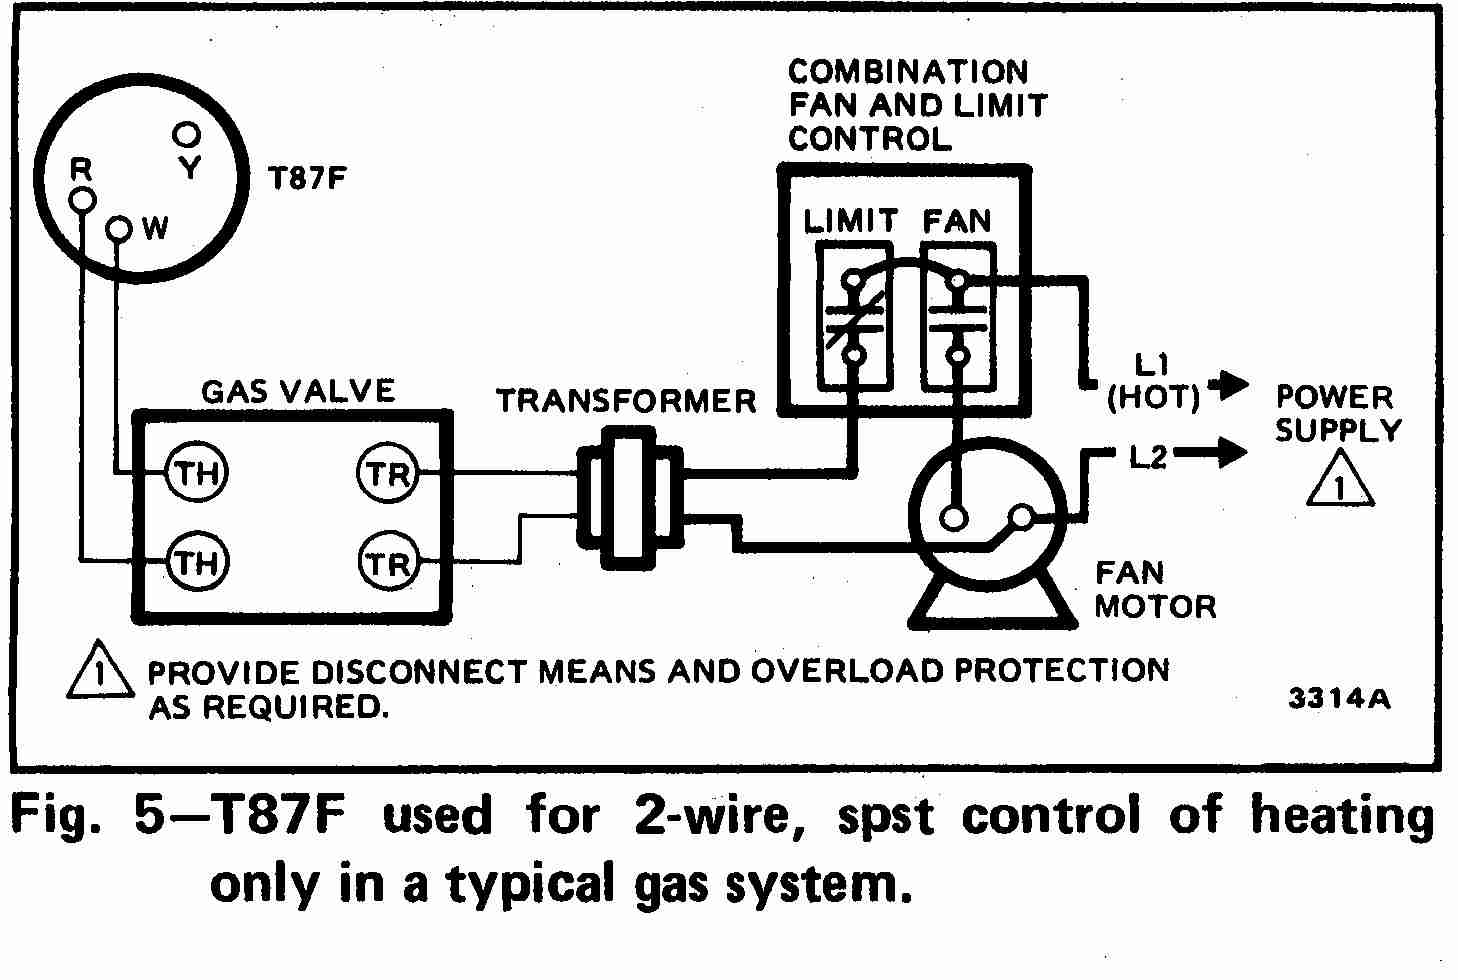 TT_T87F_0002_2Wg_DJF space heater wiring diagram s700 electric heater wire diagram Basic Outlet Wiring Diagrams at gsmportal.co